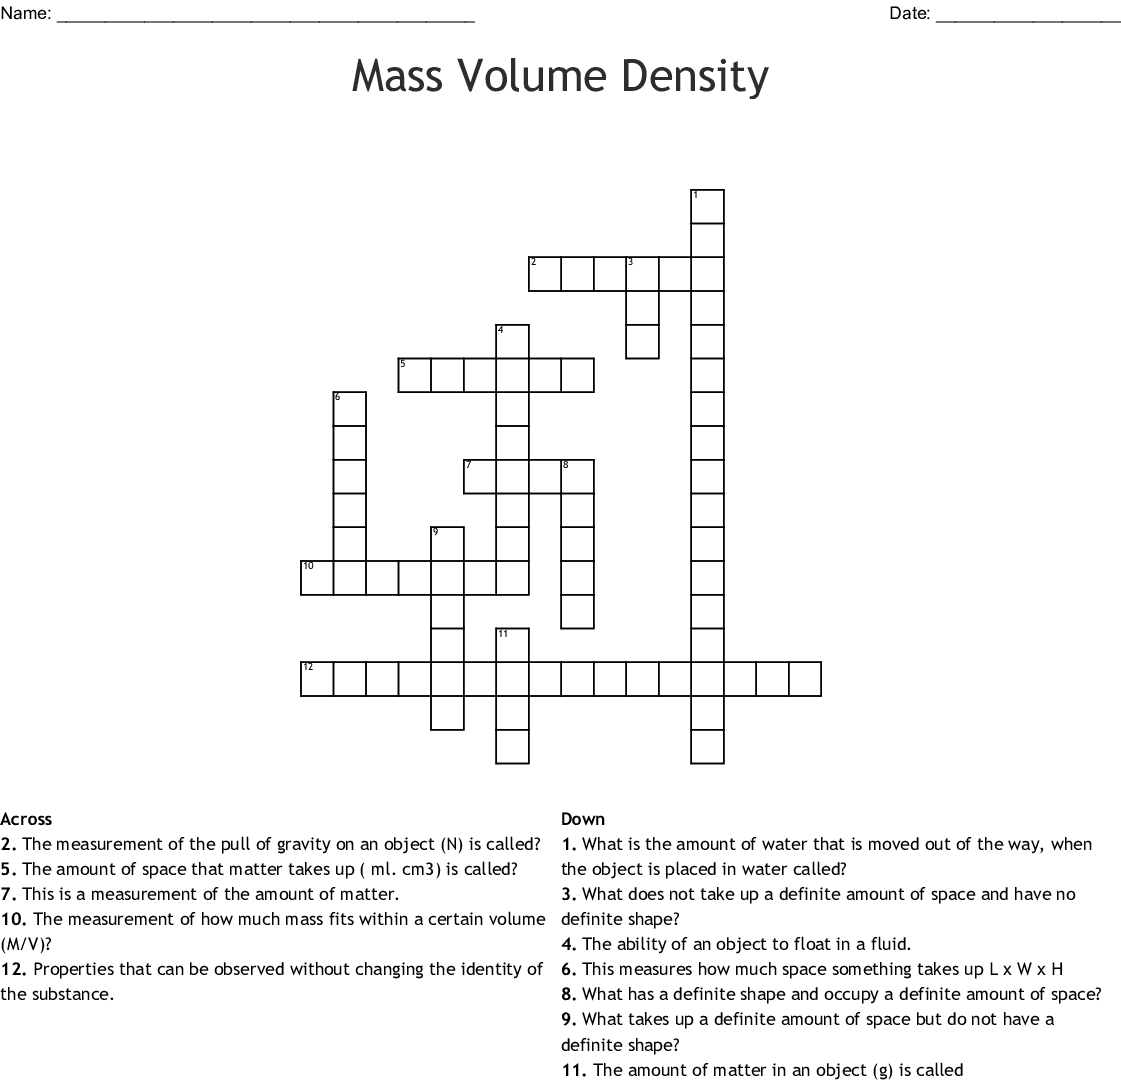 Mass Volume Density Worksheet Answers